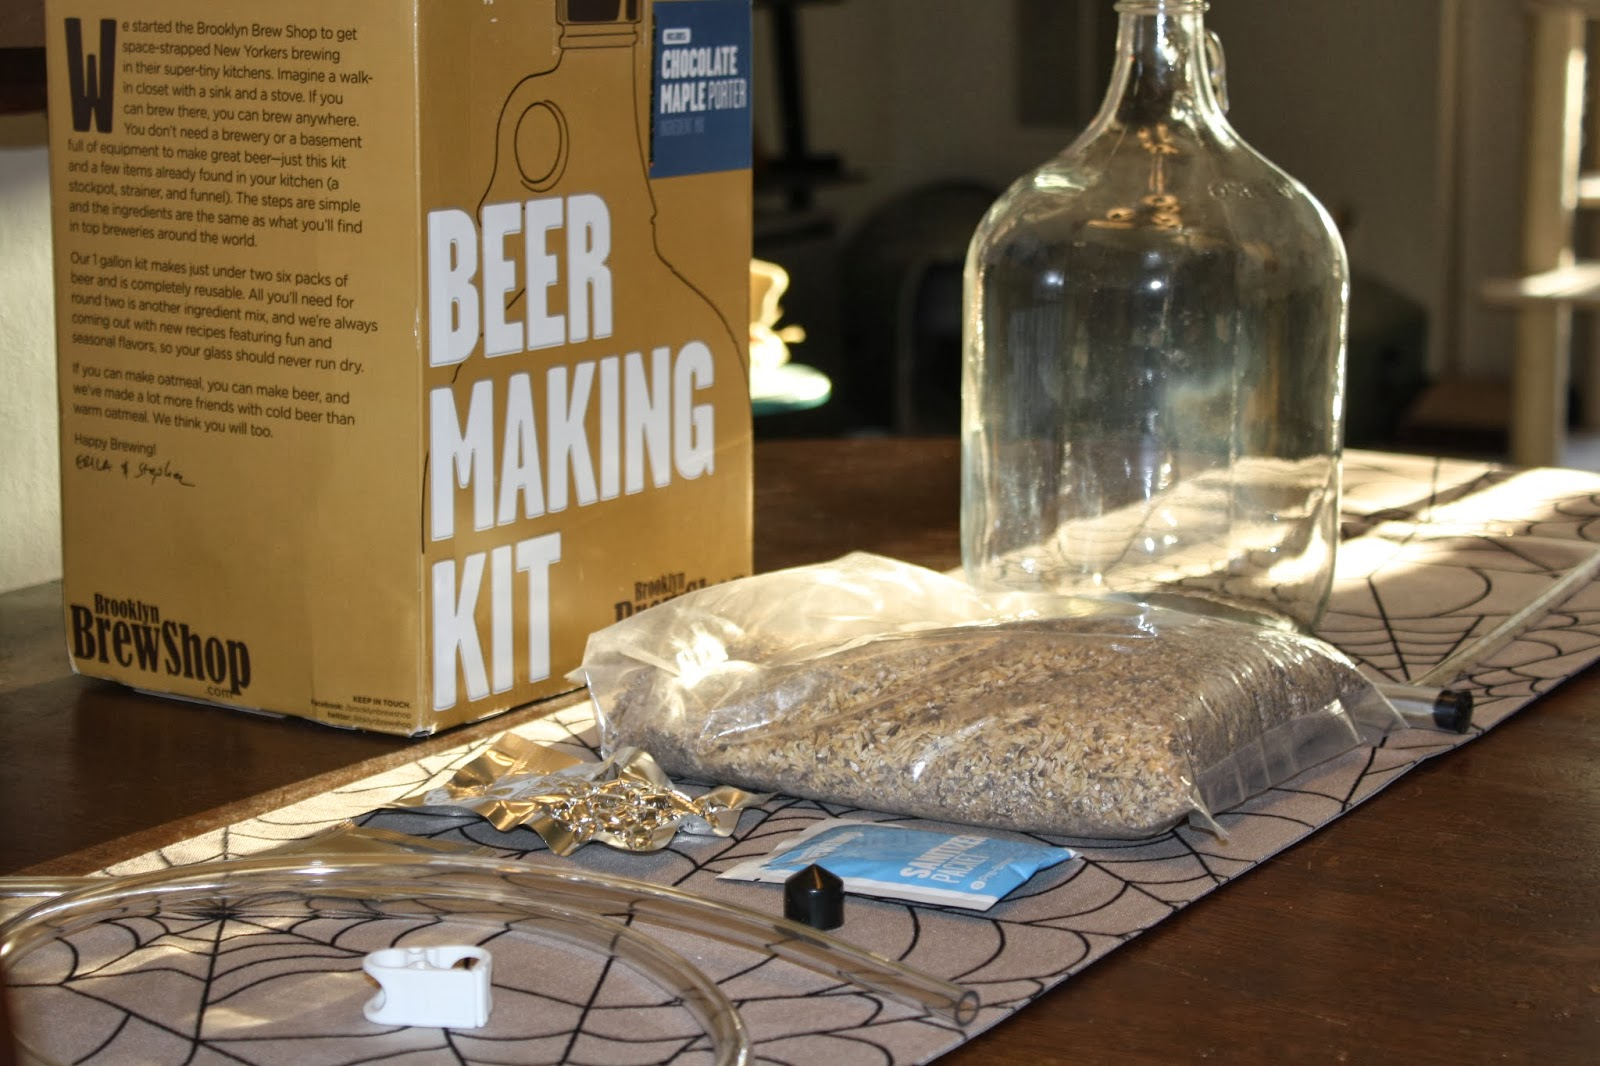 Brooklyn Brew Shop, Chocolate Maple Porter, Kit Contents, Homebrewing, Beer